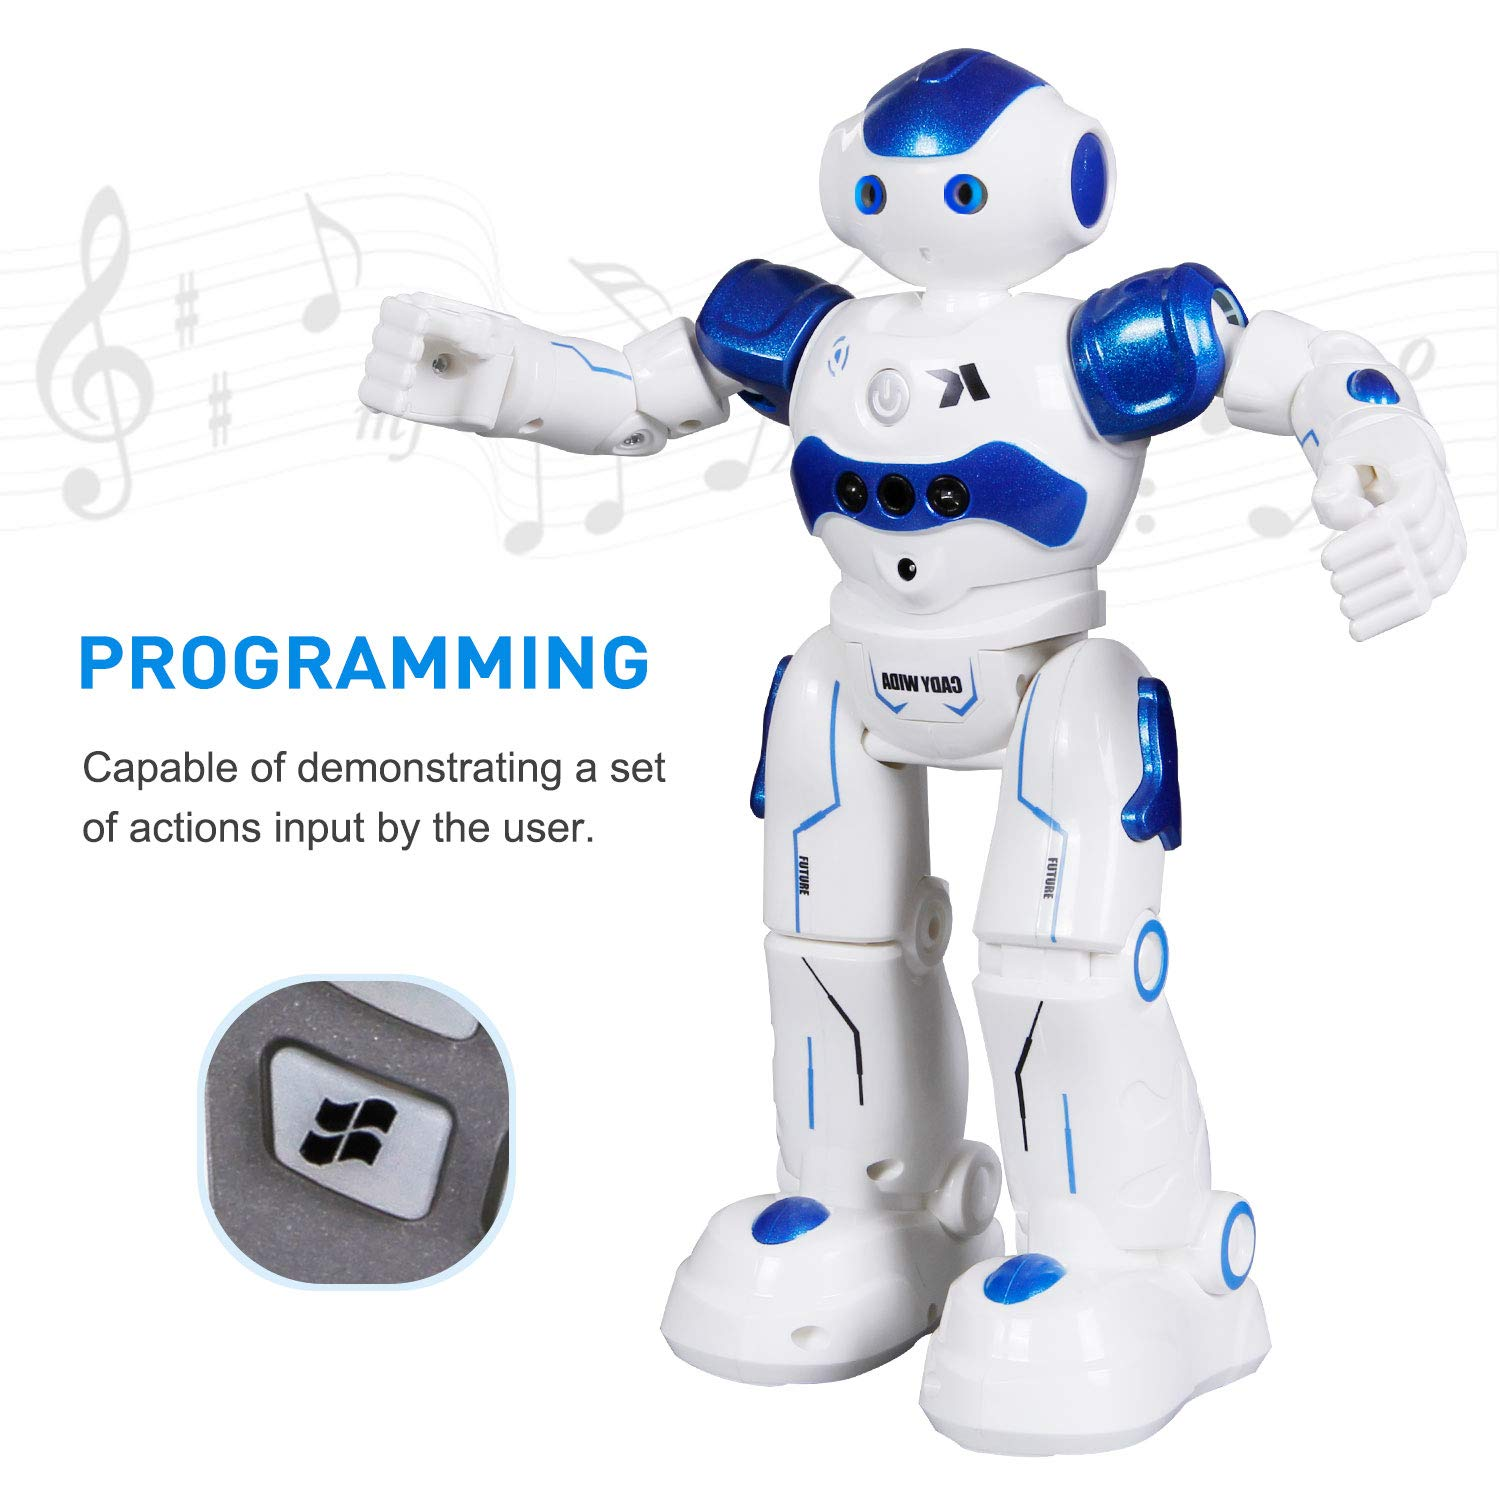 SGILE Remote Control Robot, RC Programmable Educational Robot for Kids Birthday Gift Present, Interactive Walking Singing Dancing Smart Intelligent Robotics for Kids Boy, Blue by SGILE (Image #2)